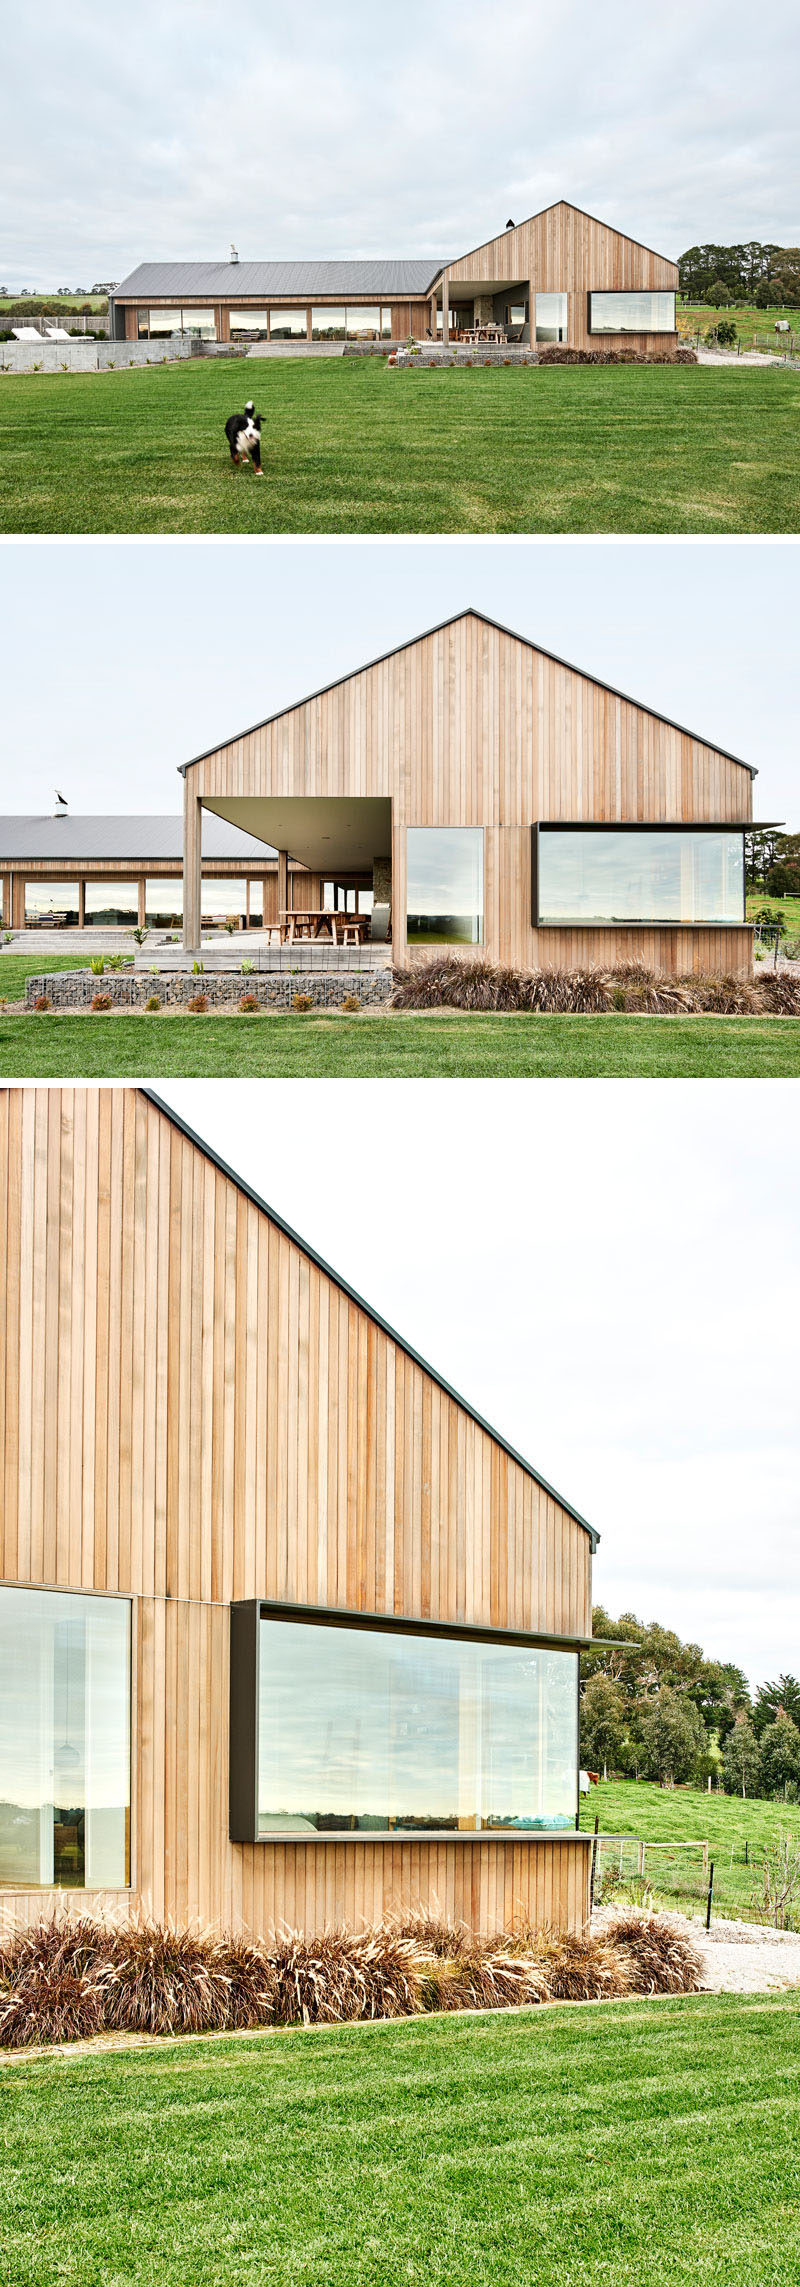 This modern ranch-inspired house has plenty of windows, including one that has a frame that protrudes out from the wood siding. #WoodSiding #Windows #ModernHouse #Architecture